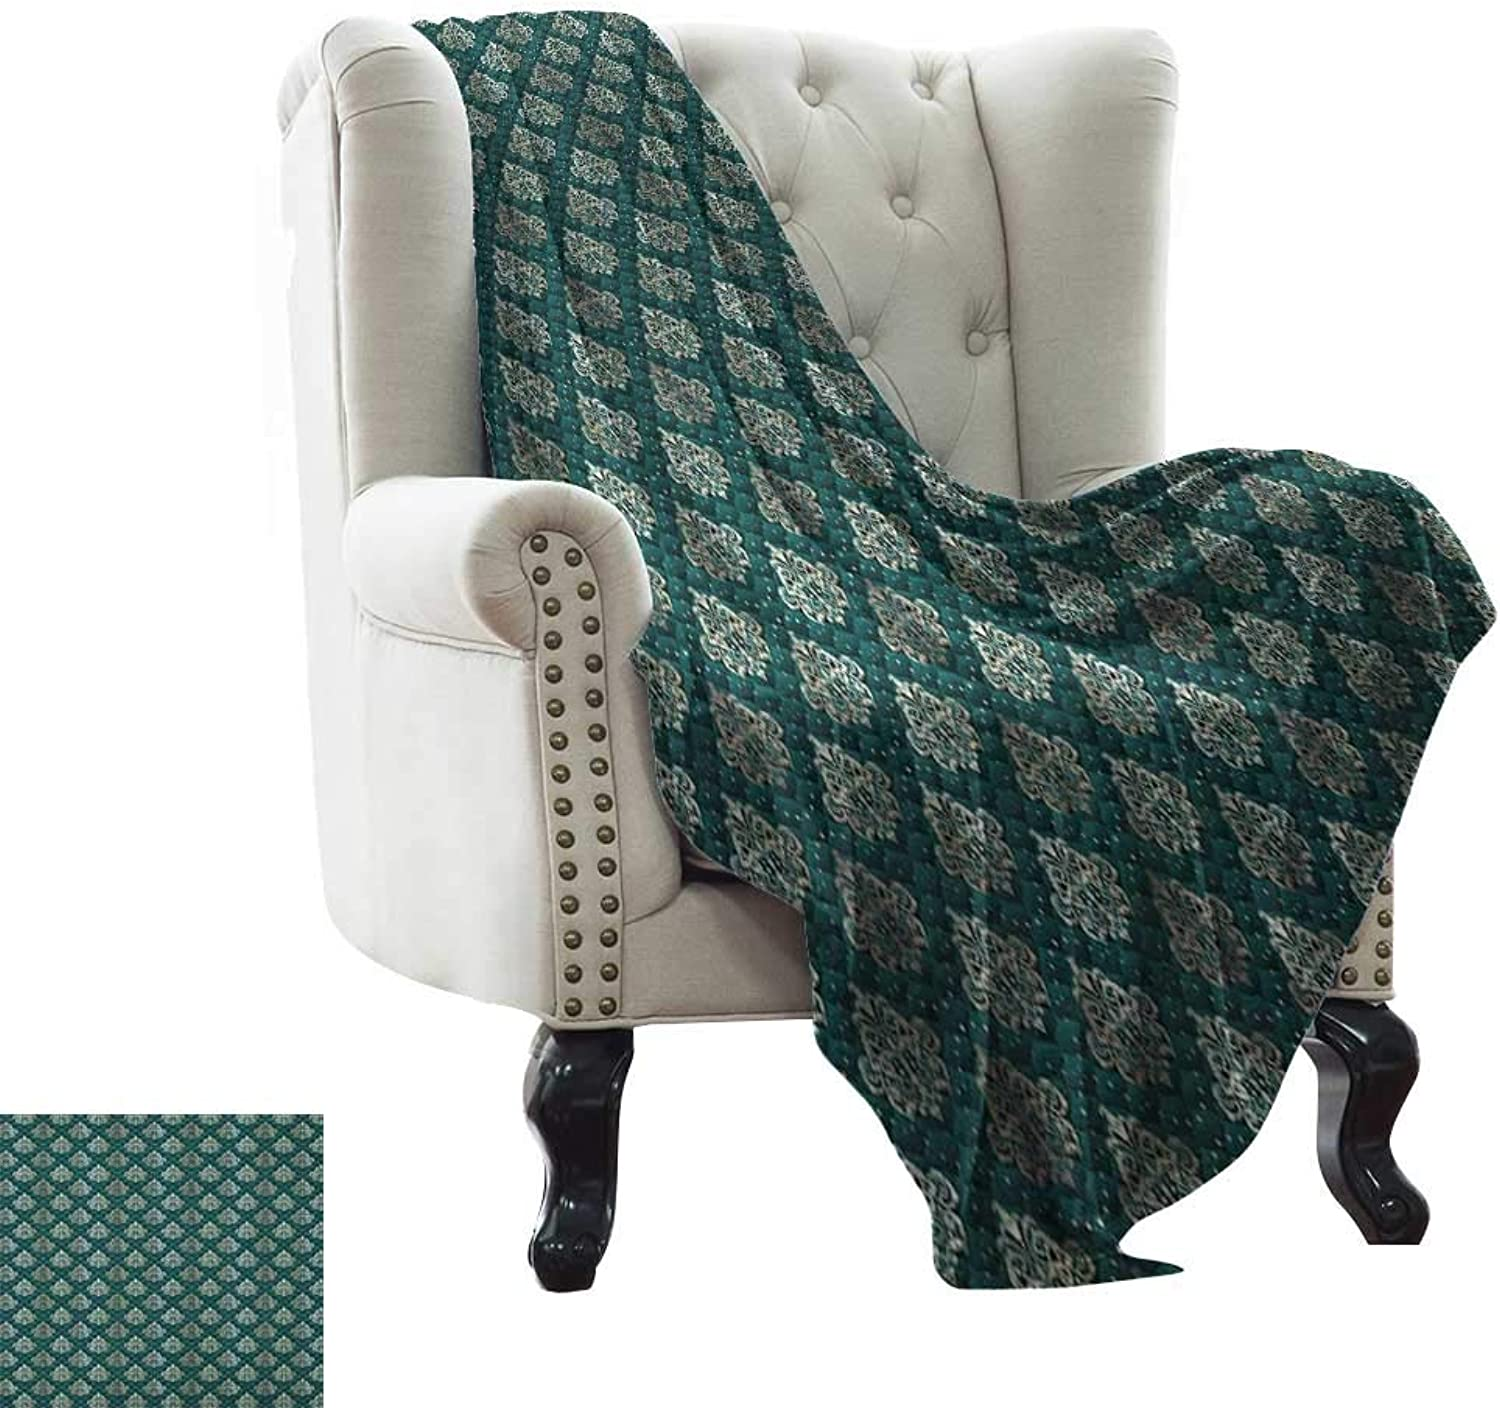 LsWOW Weighted Blanket for Kids Damask,French Pattern Inspired by Rococo Era Designs Intricate Renaissance Motifs, Jade Green gold for Bed & Couch Sofa Easy Care 50 x60